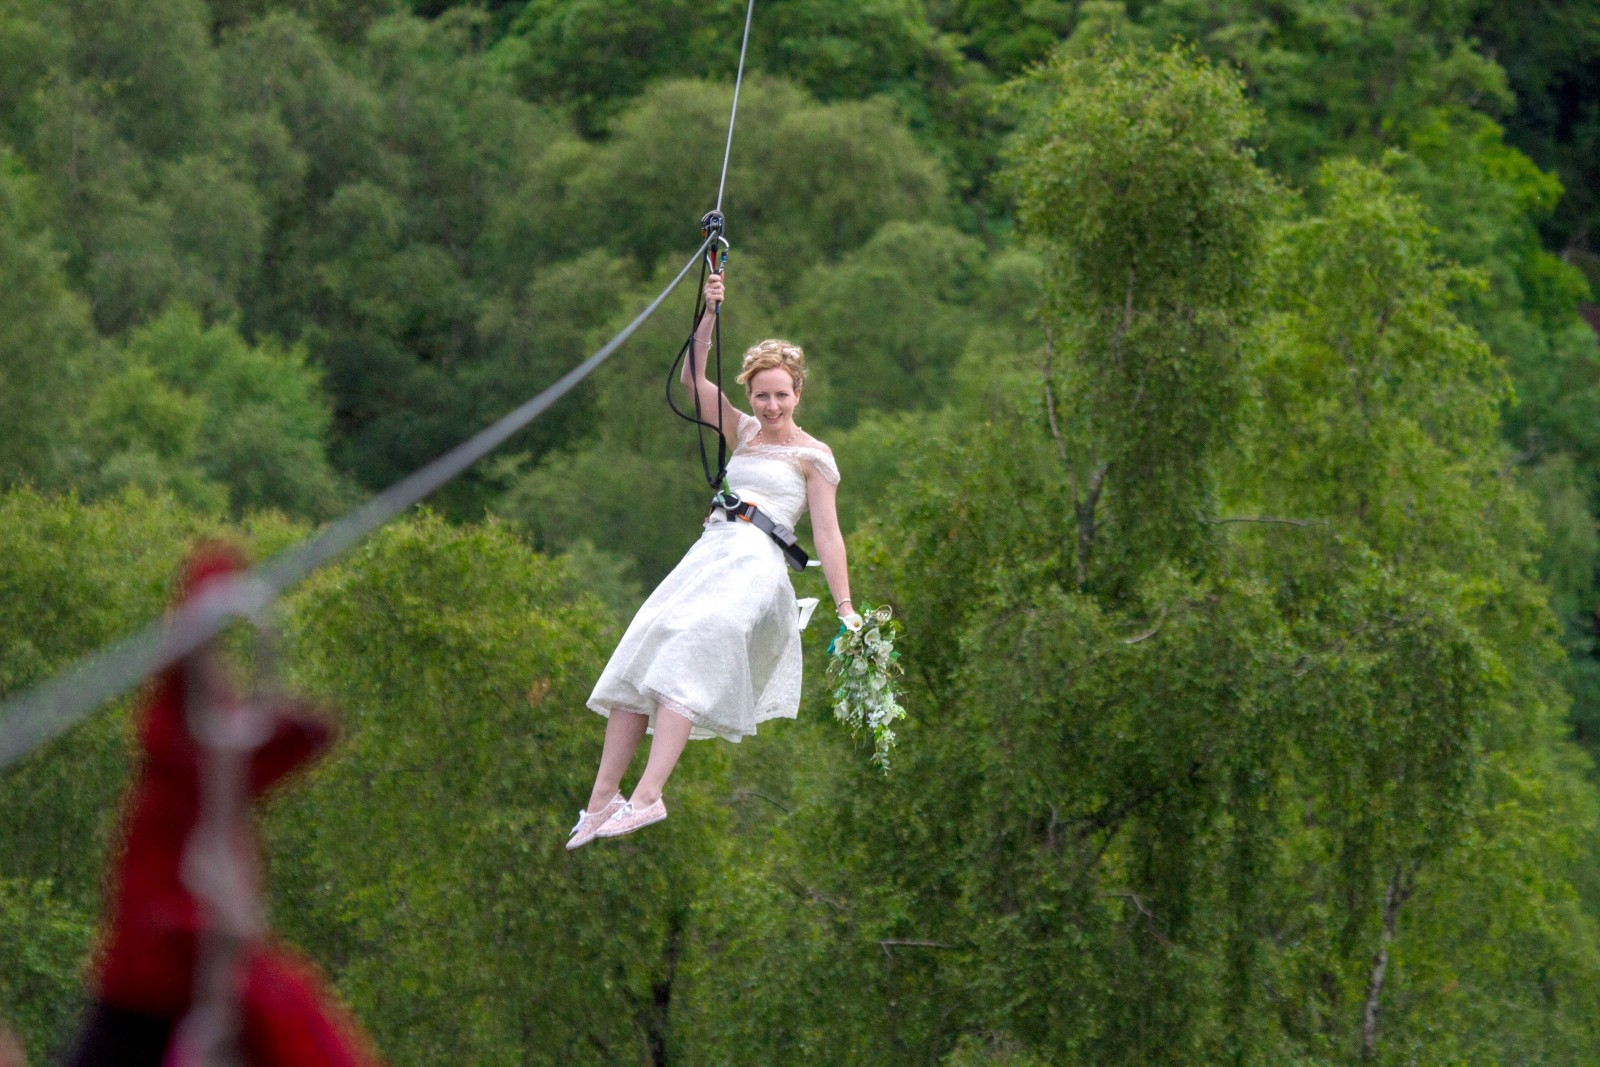 Here comes the bride! Is this the most daring wedding EVER?